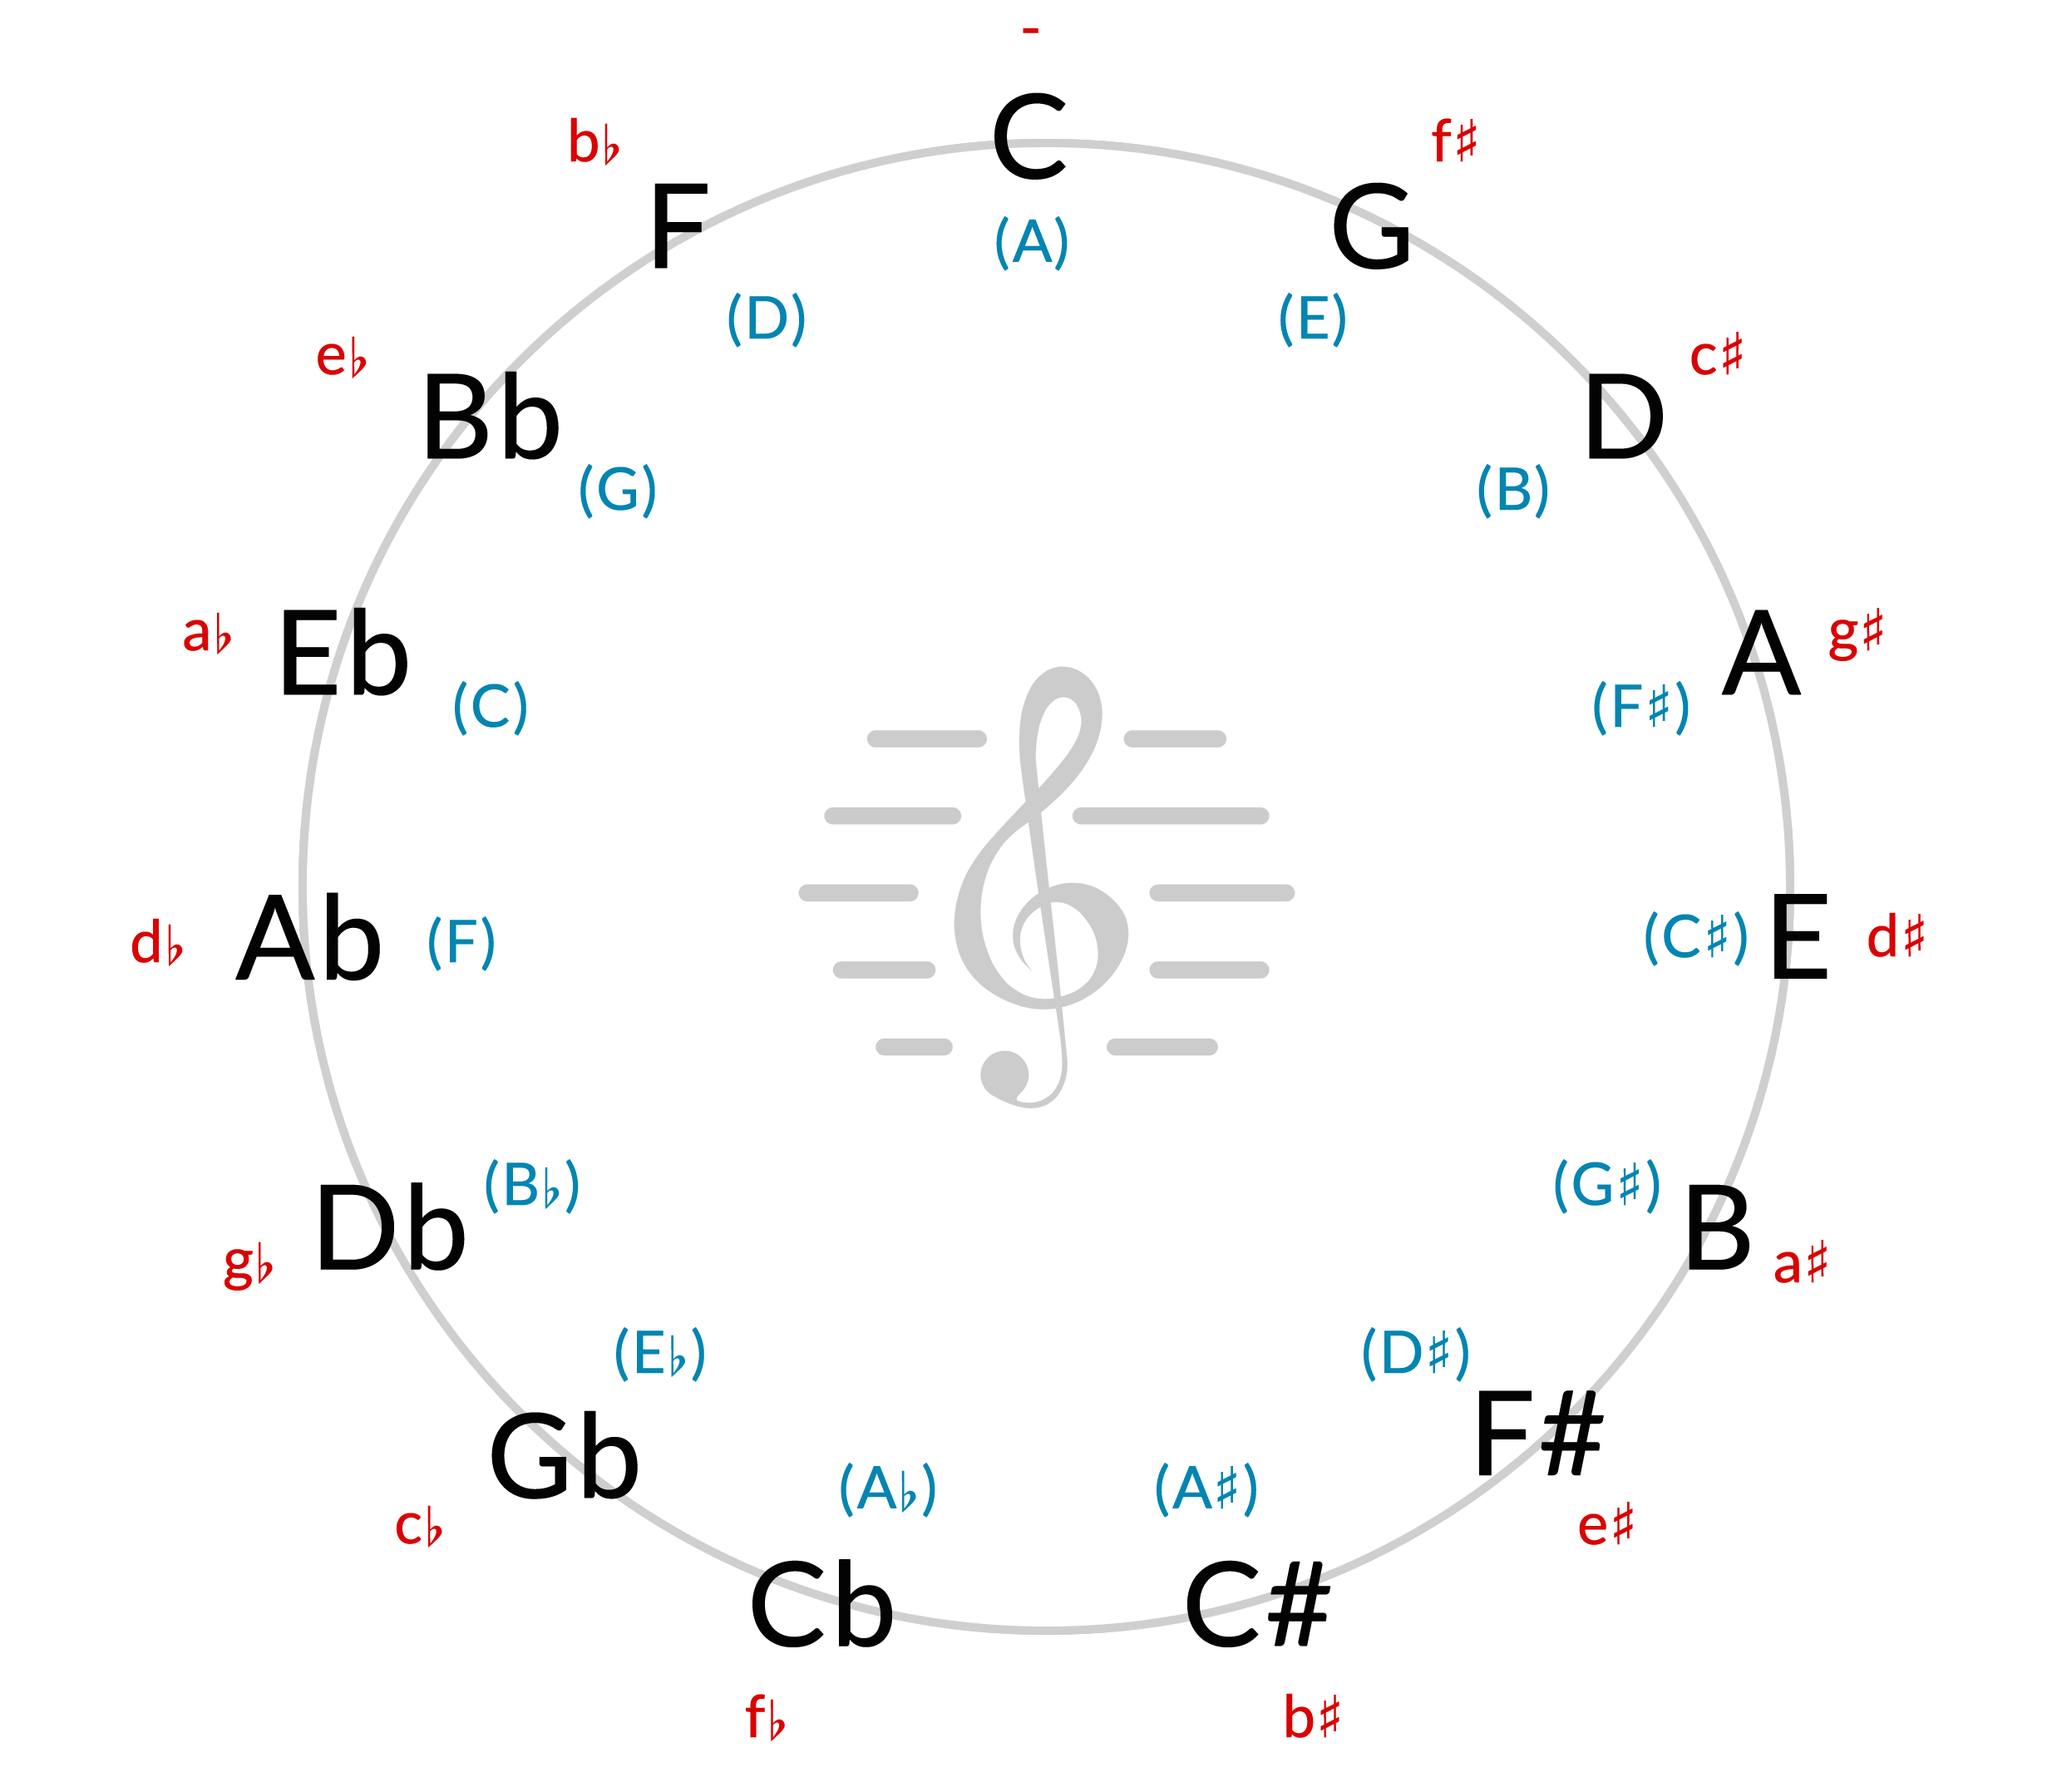 Alex_Shore_Circle_of_Fifths.png